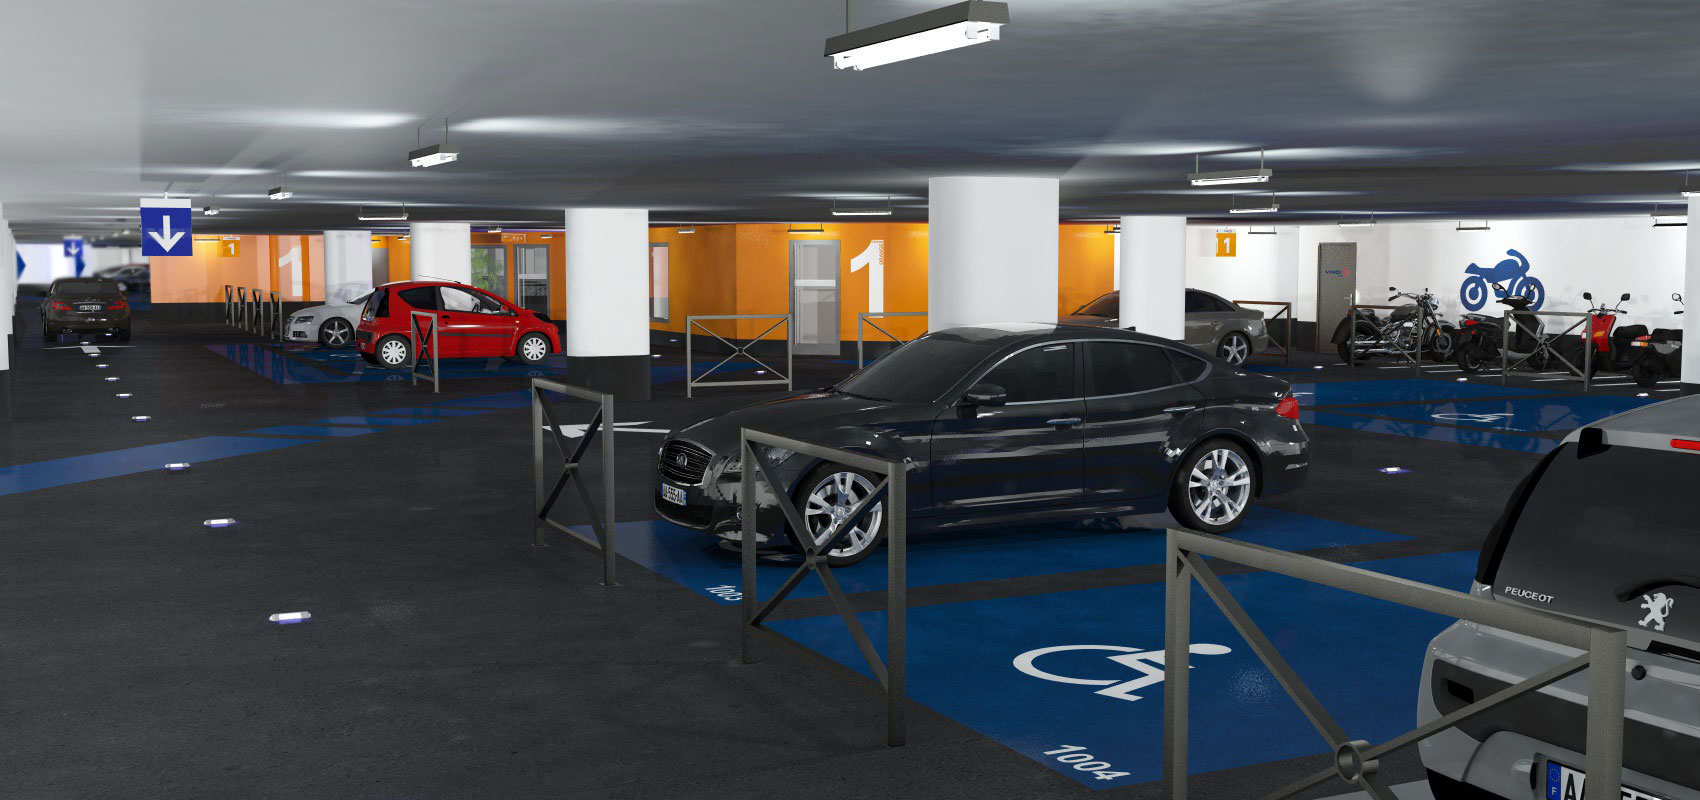 J ai opt pour une place de parking souterrain - Comment acheter un parking ...